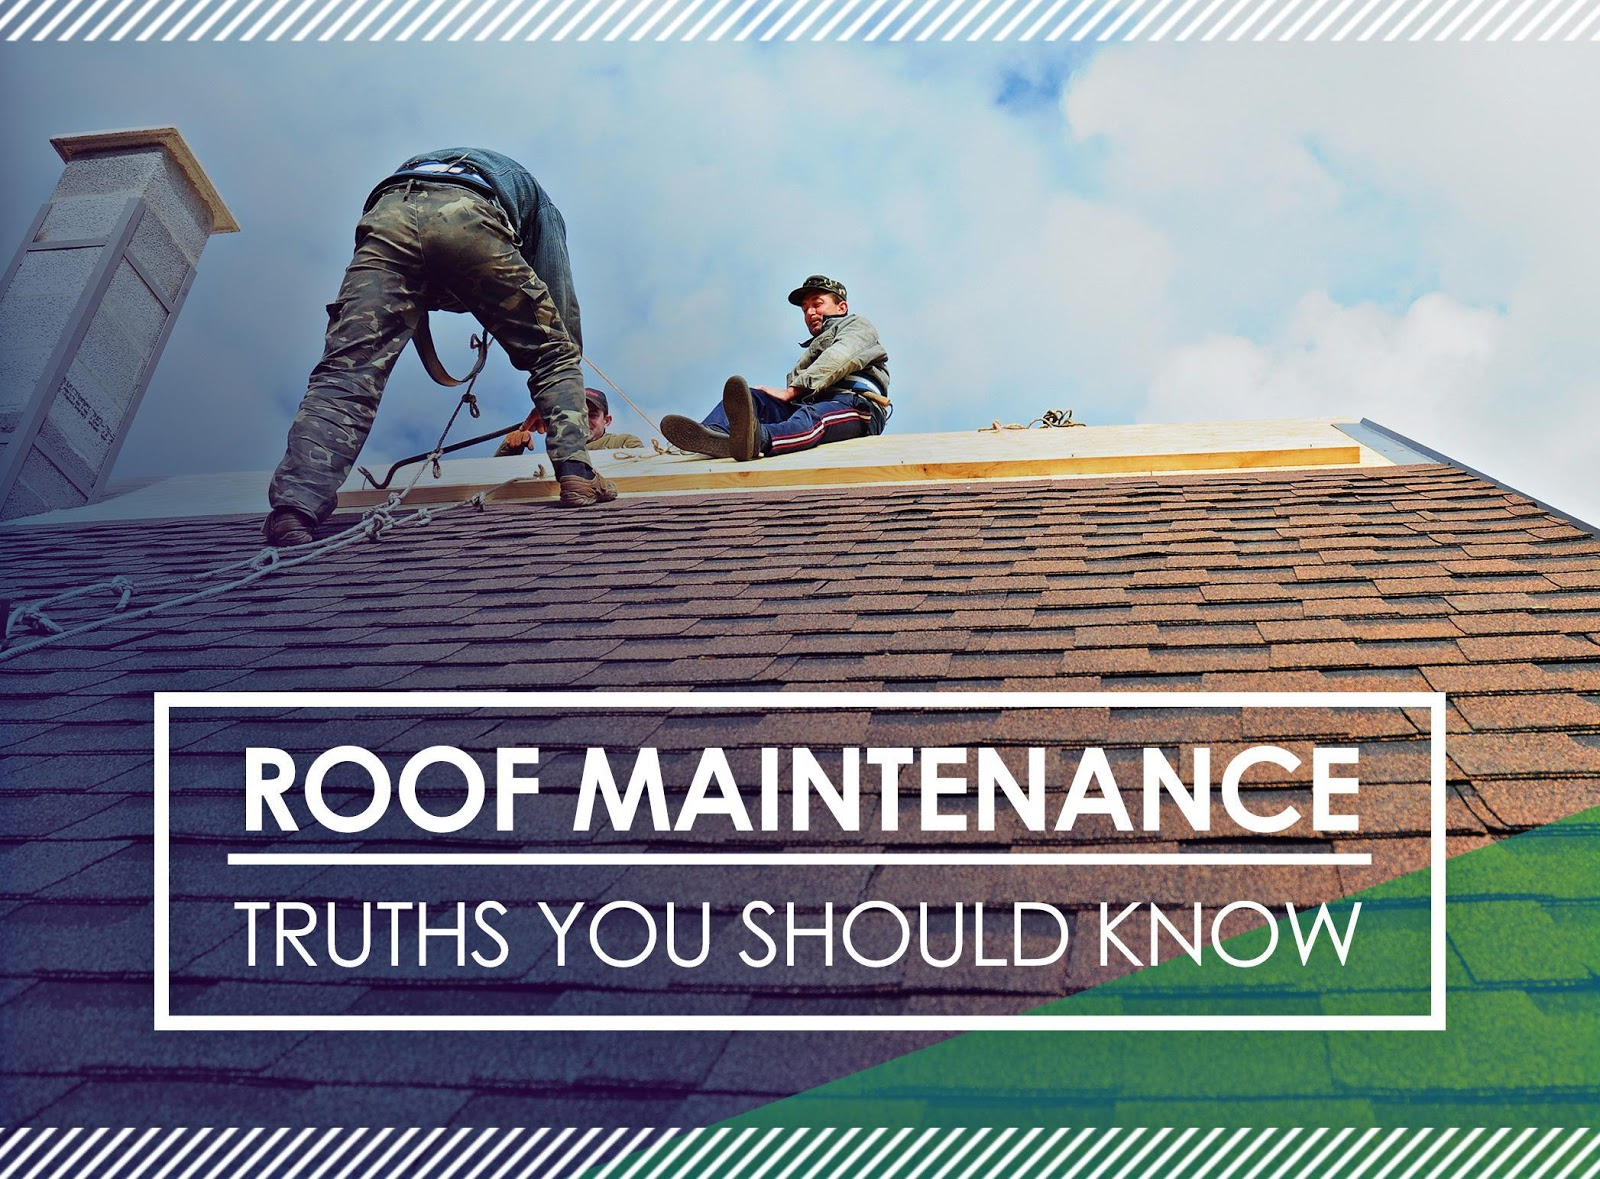 Roof Maintenance Truths You Should Know